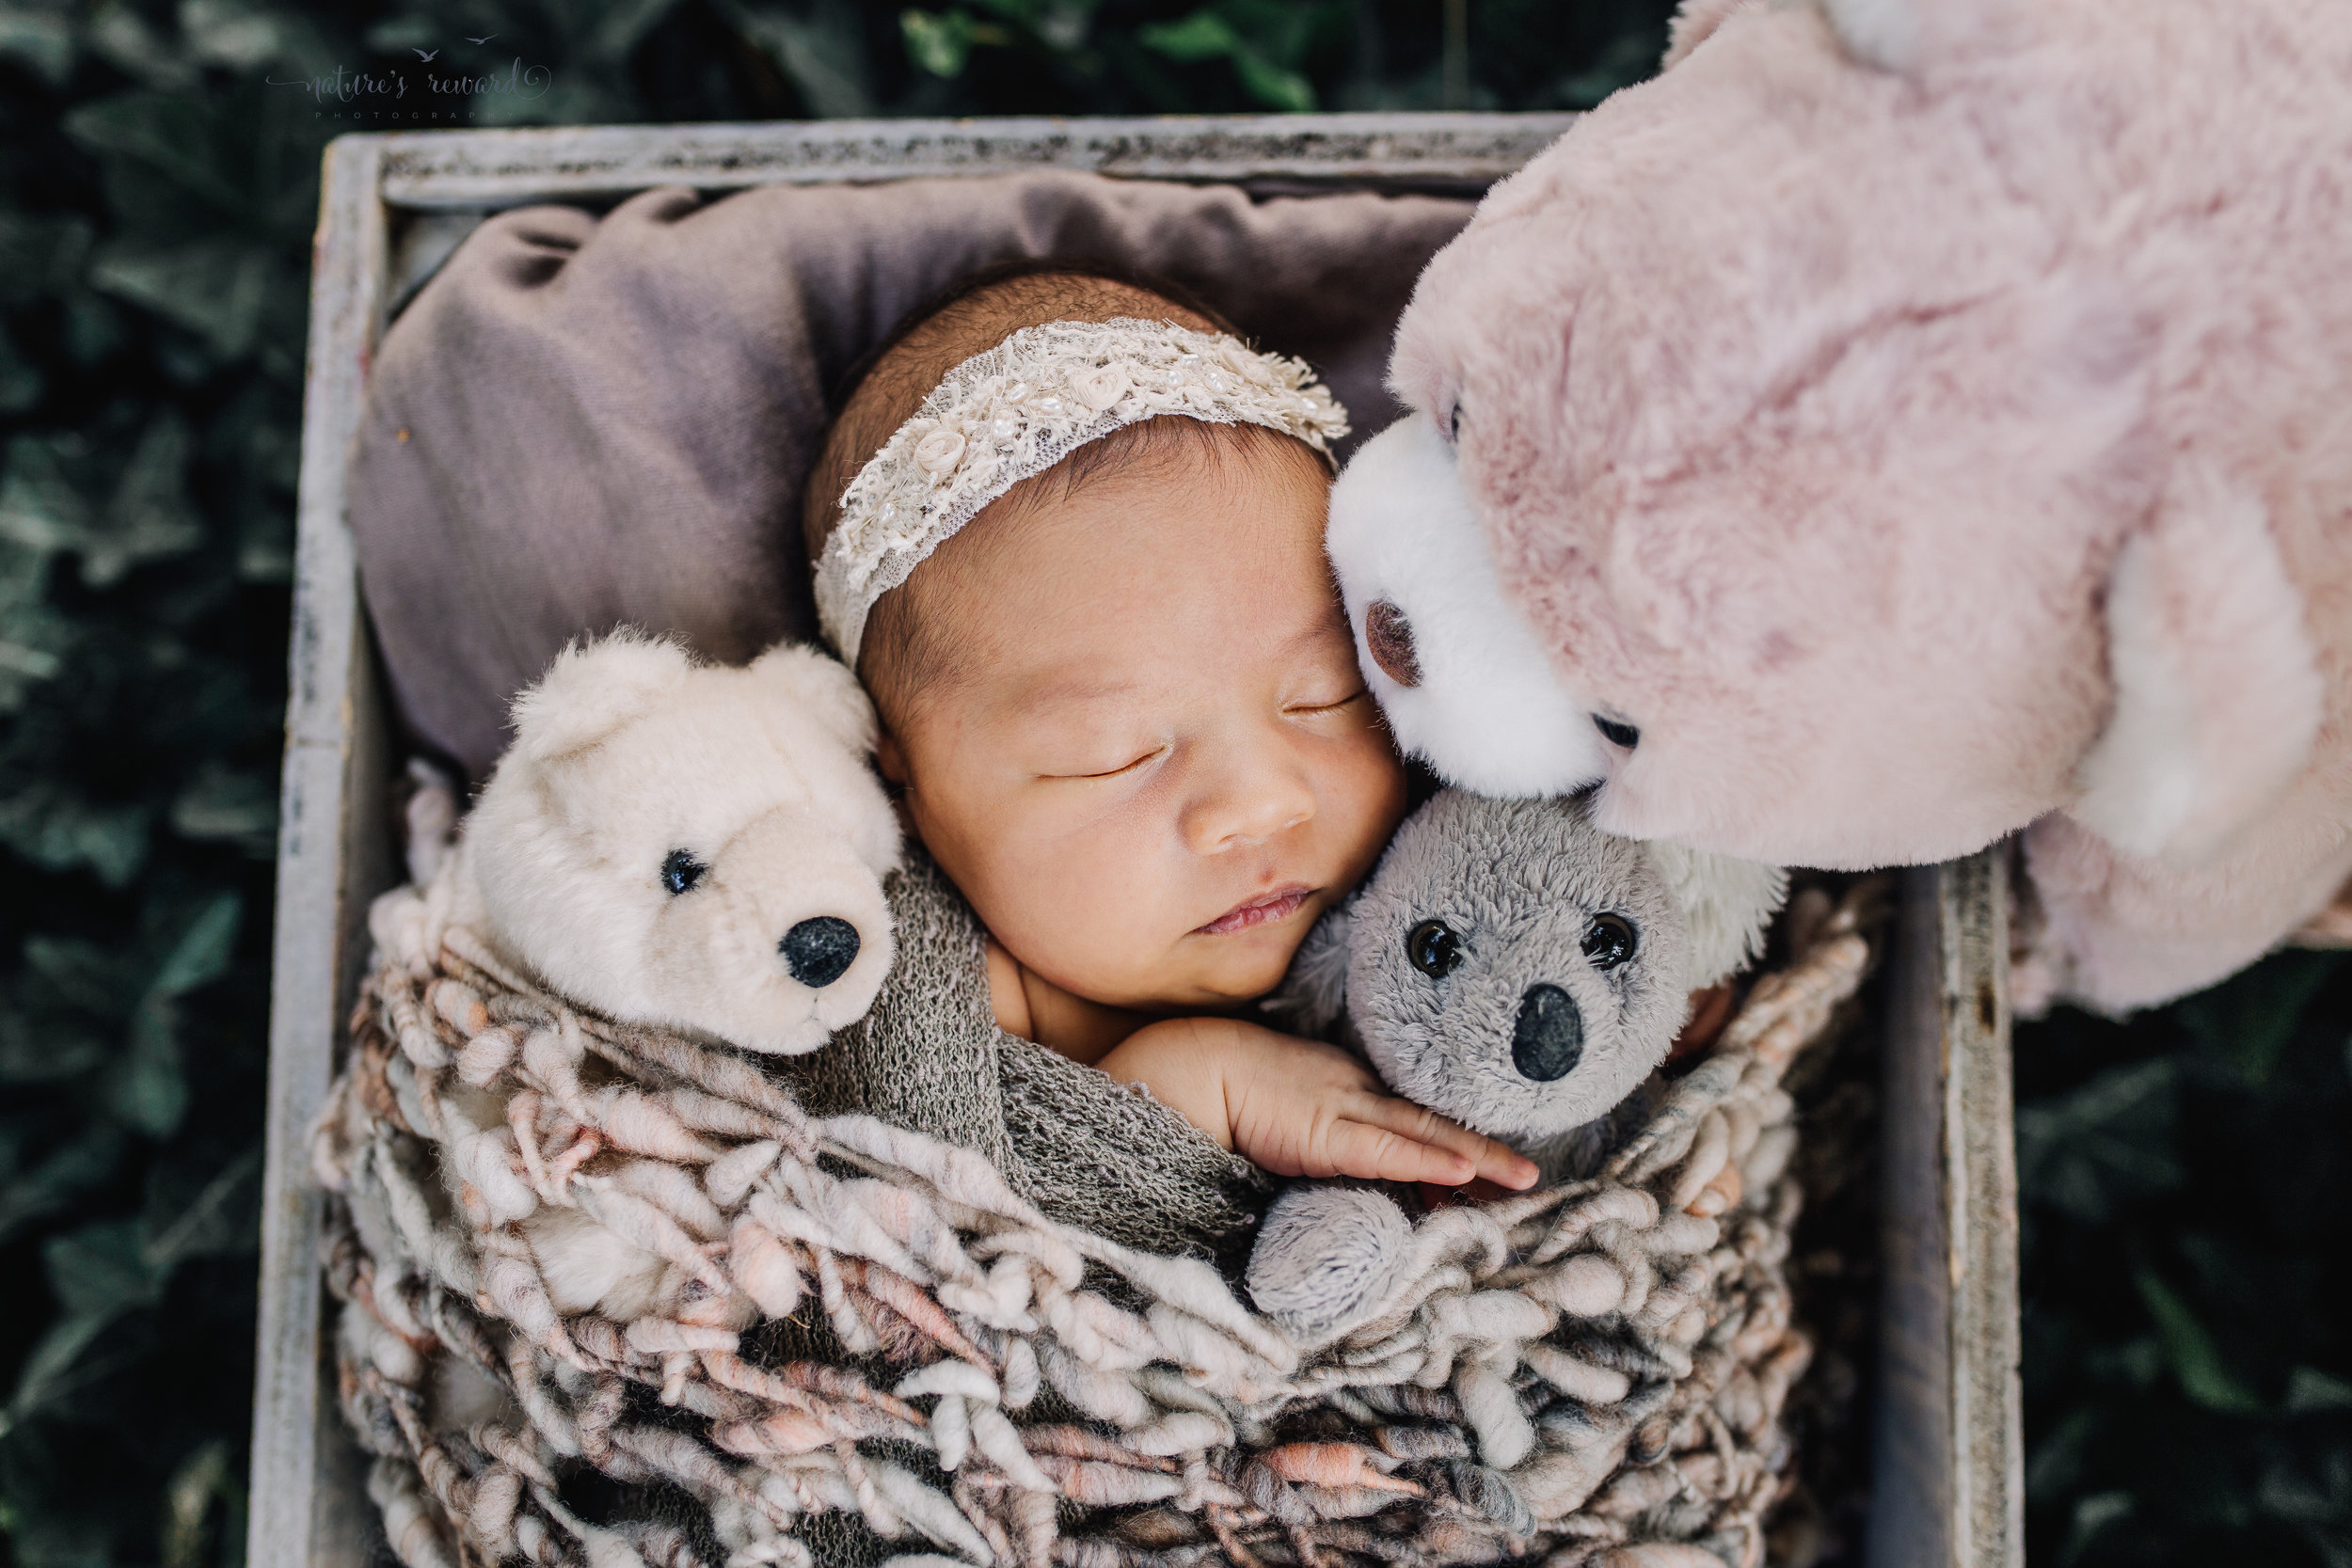 Gorgeous baby newborn girl swaddled in neutral wearing a white tie back and in a garden surrounded by lush greens with her stuffs from home in this portrait by Nature's Reward Photography